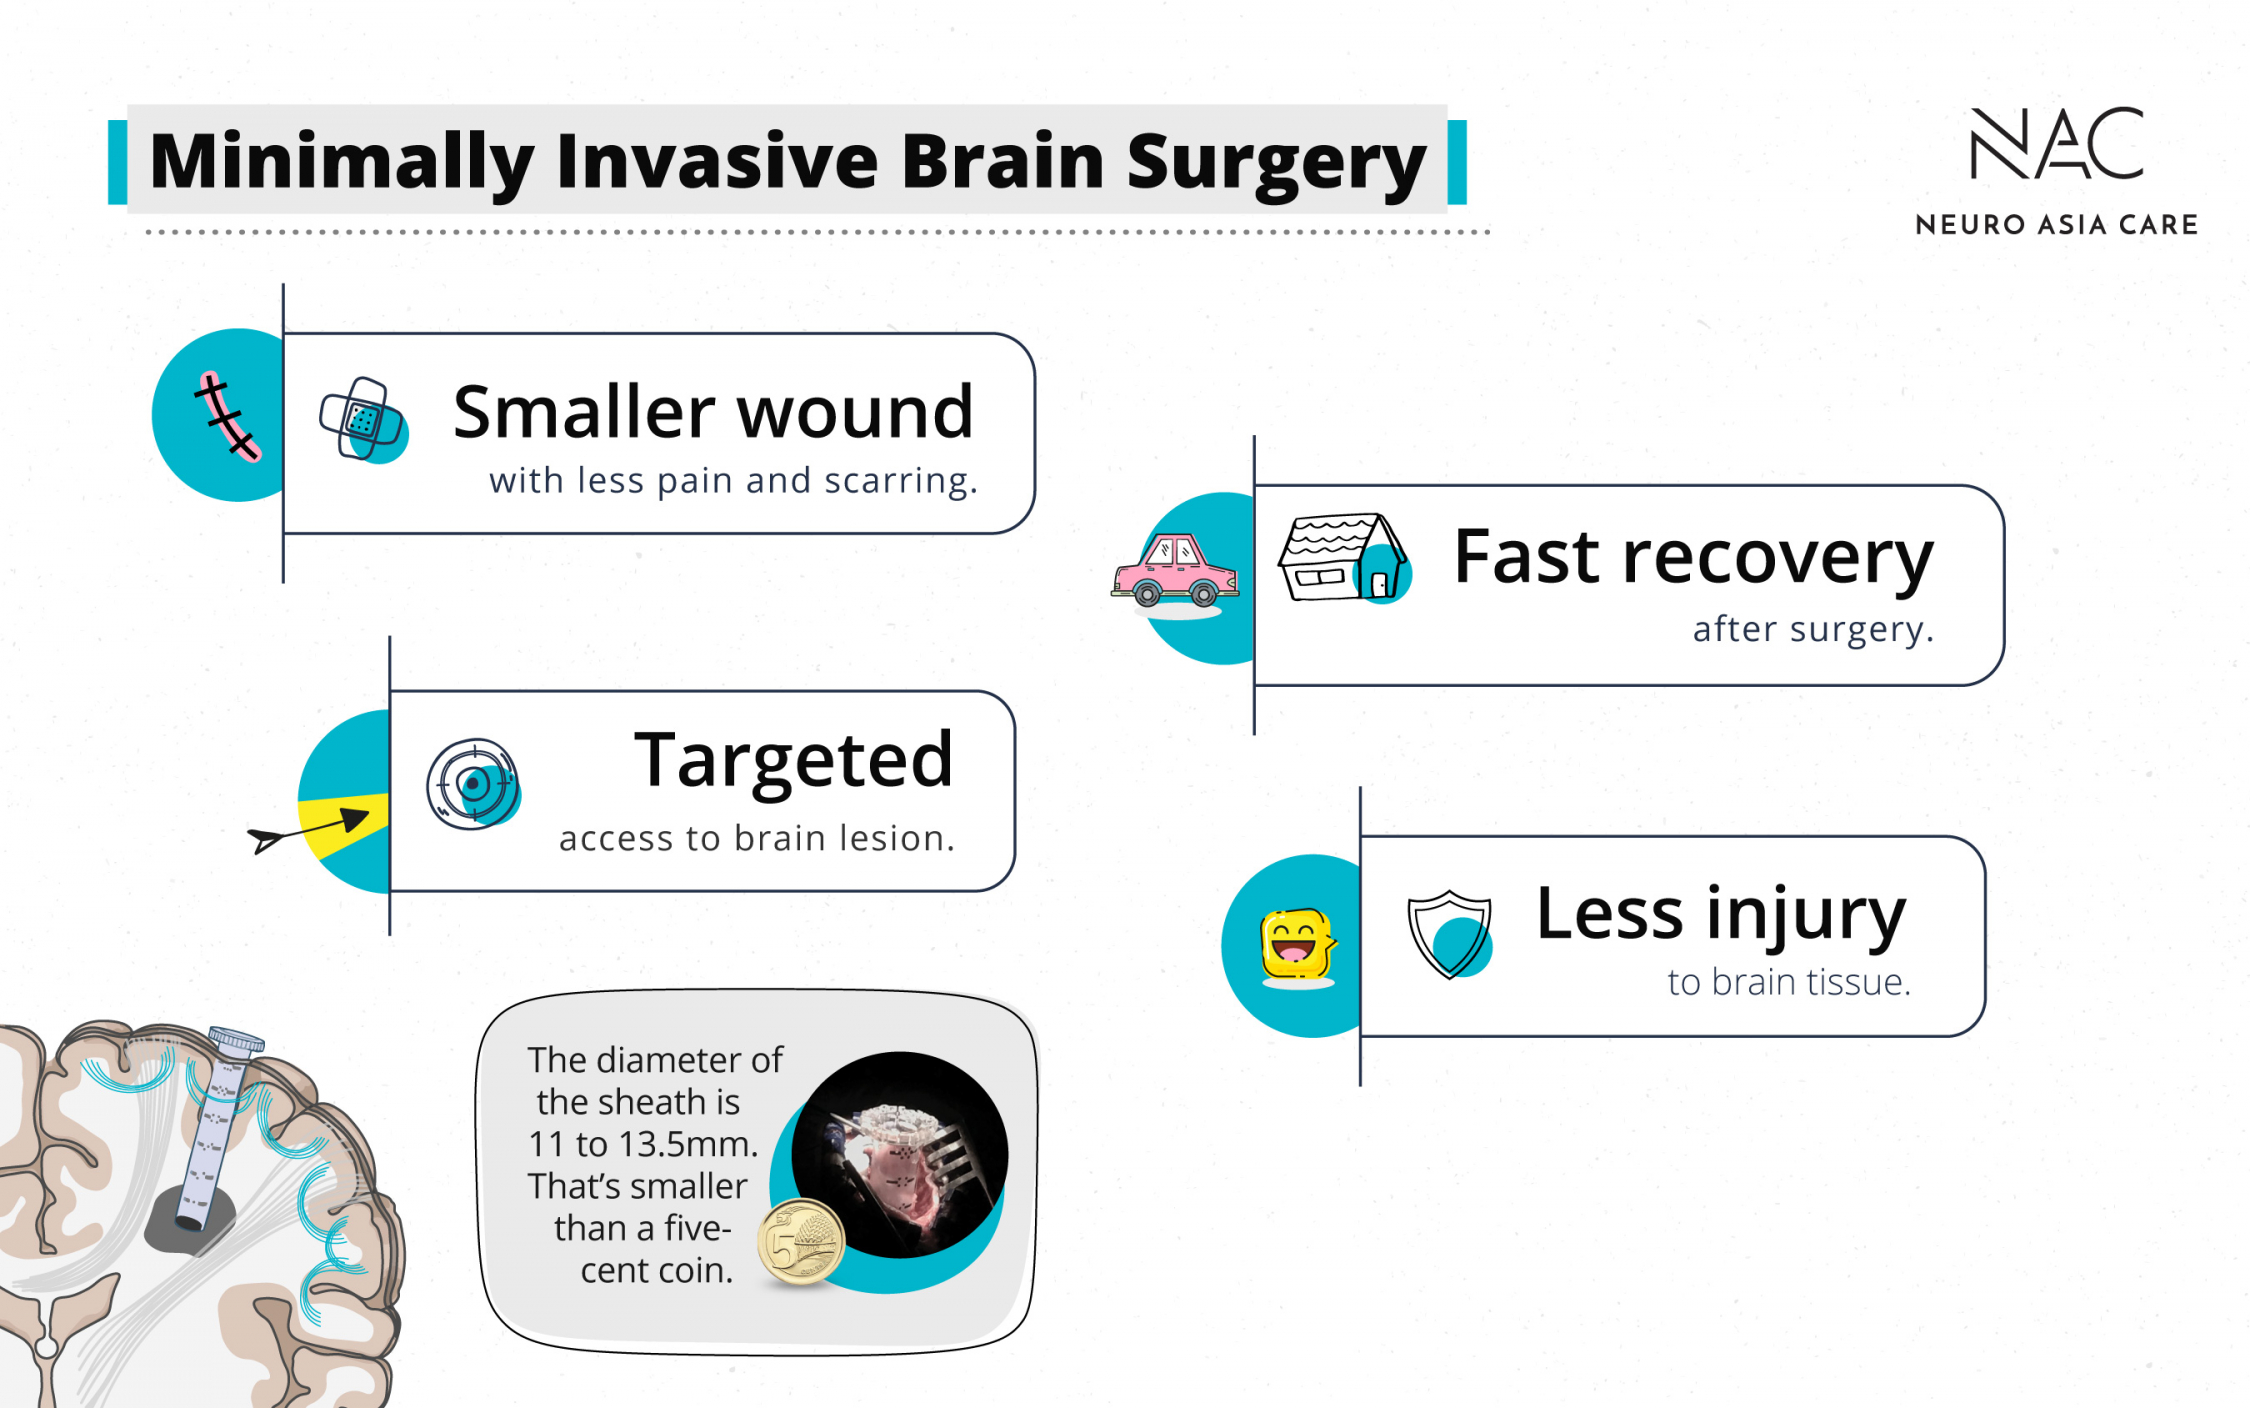 The advantages of minimally invasive brain surgery summarised